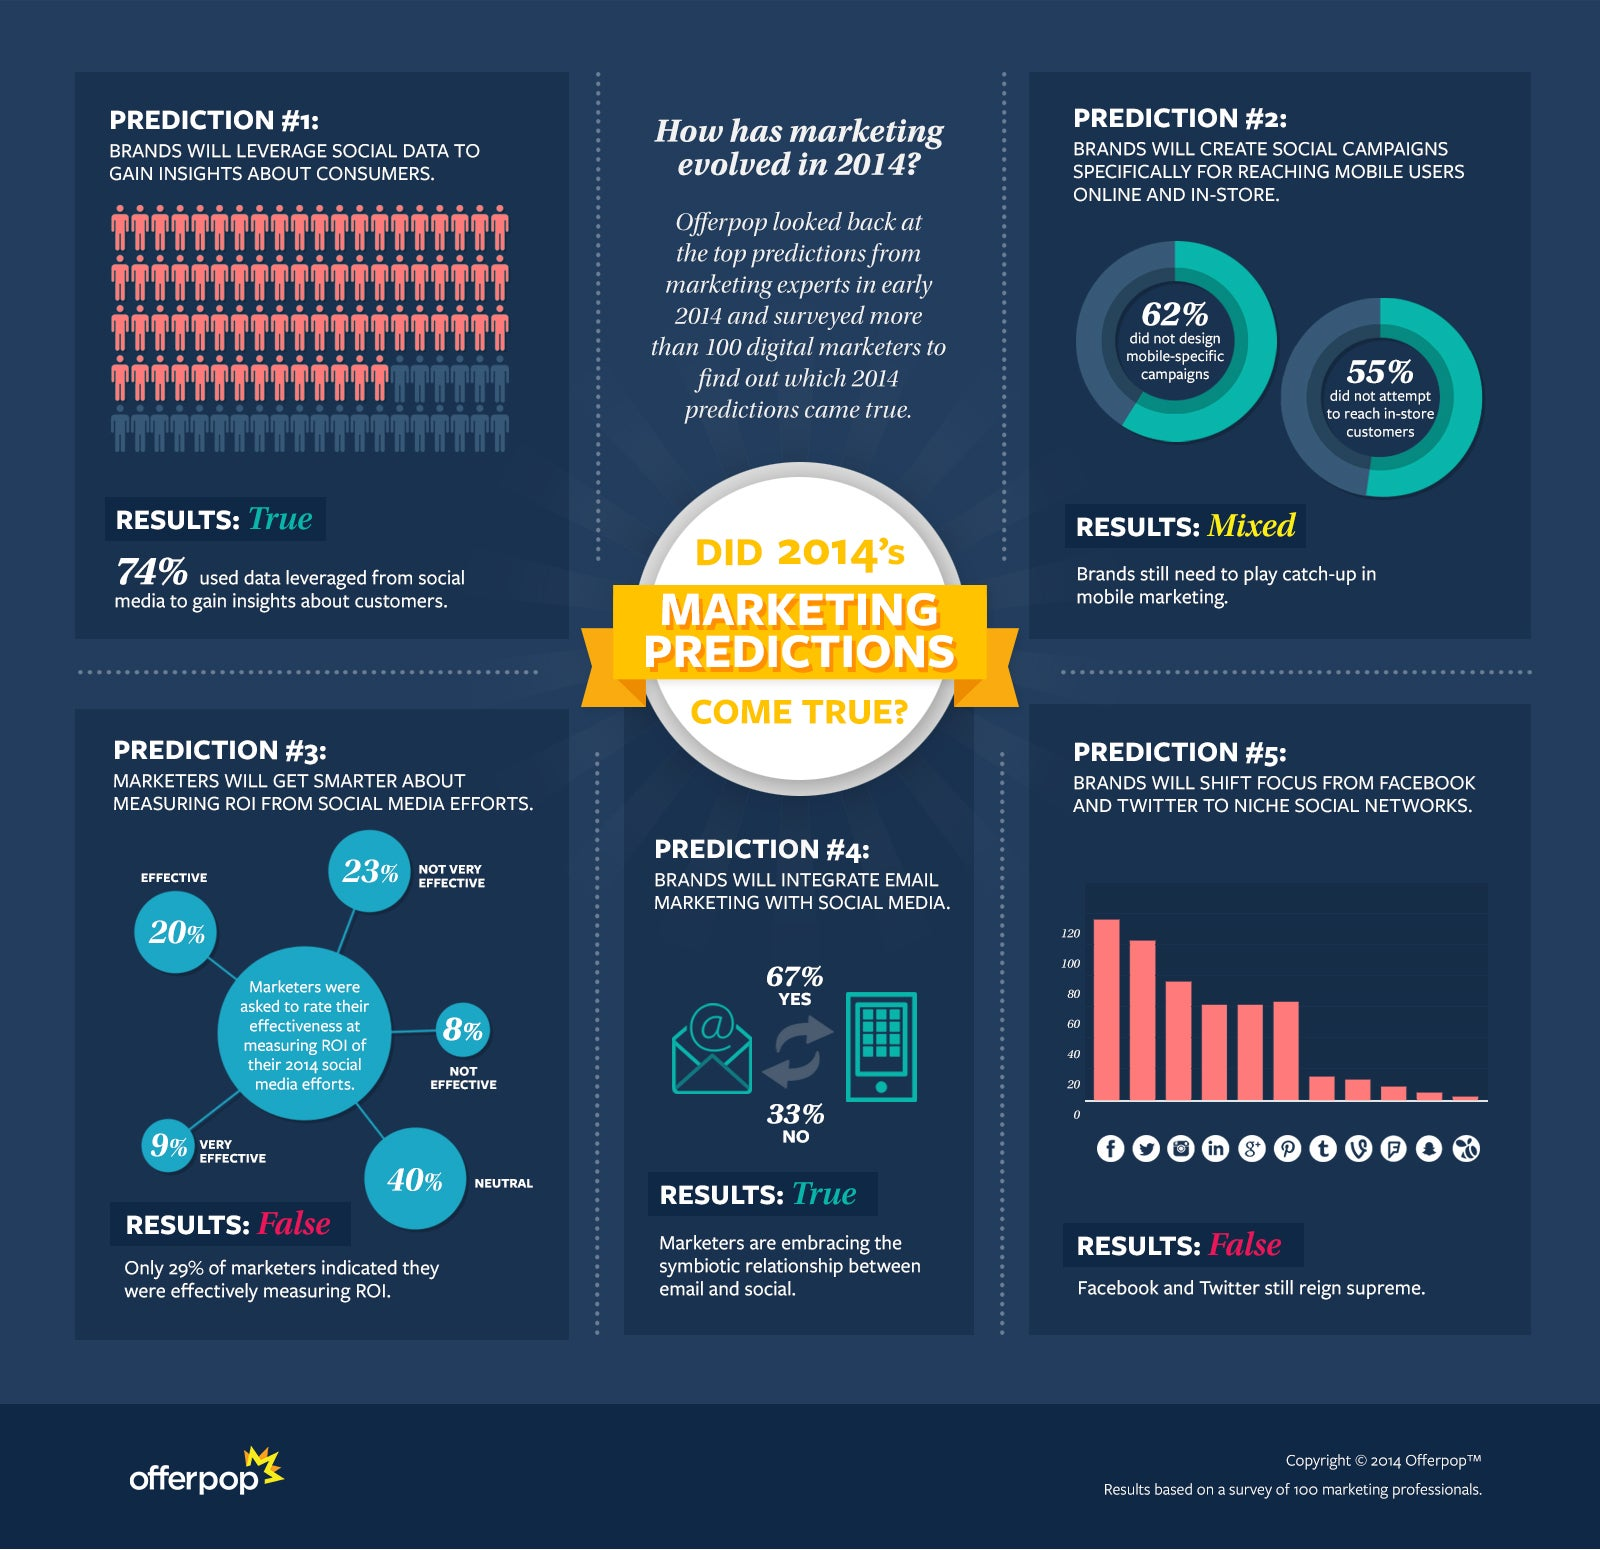 Did 2014's Marketing Predictions Come True?(Infographic)